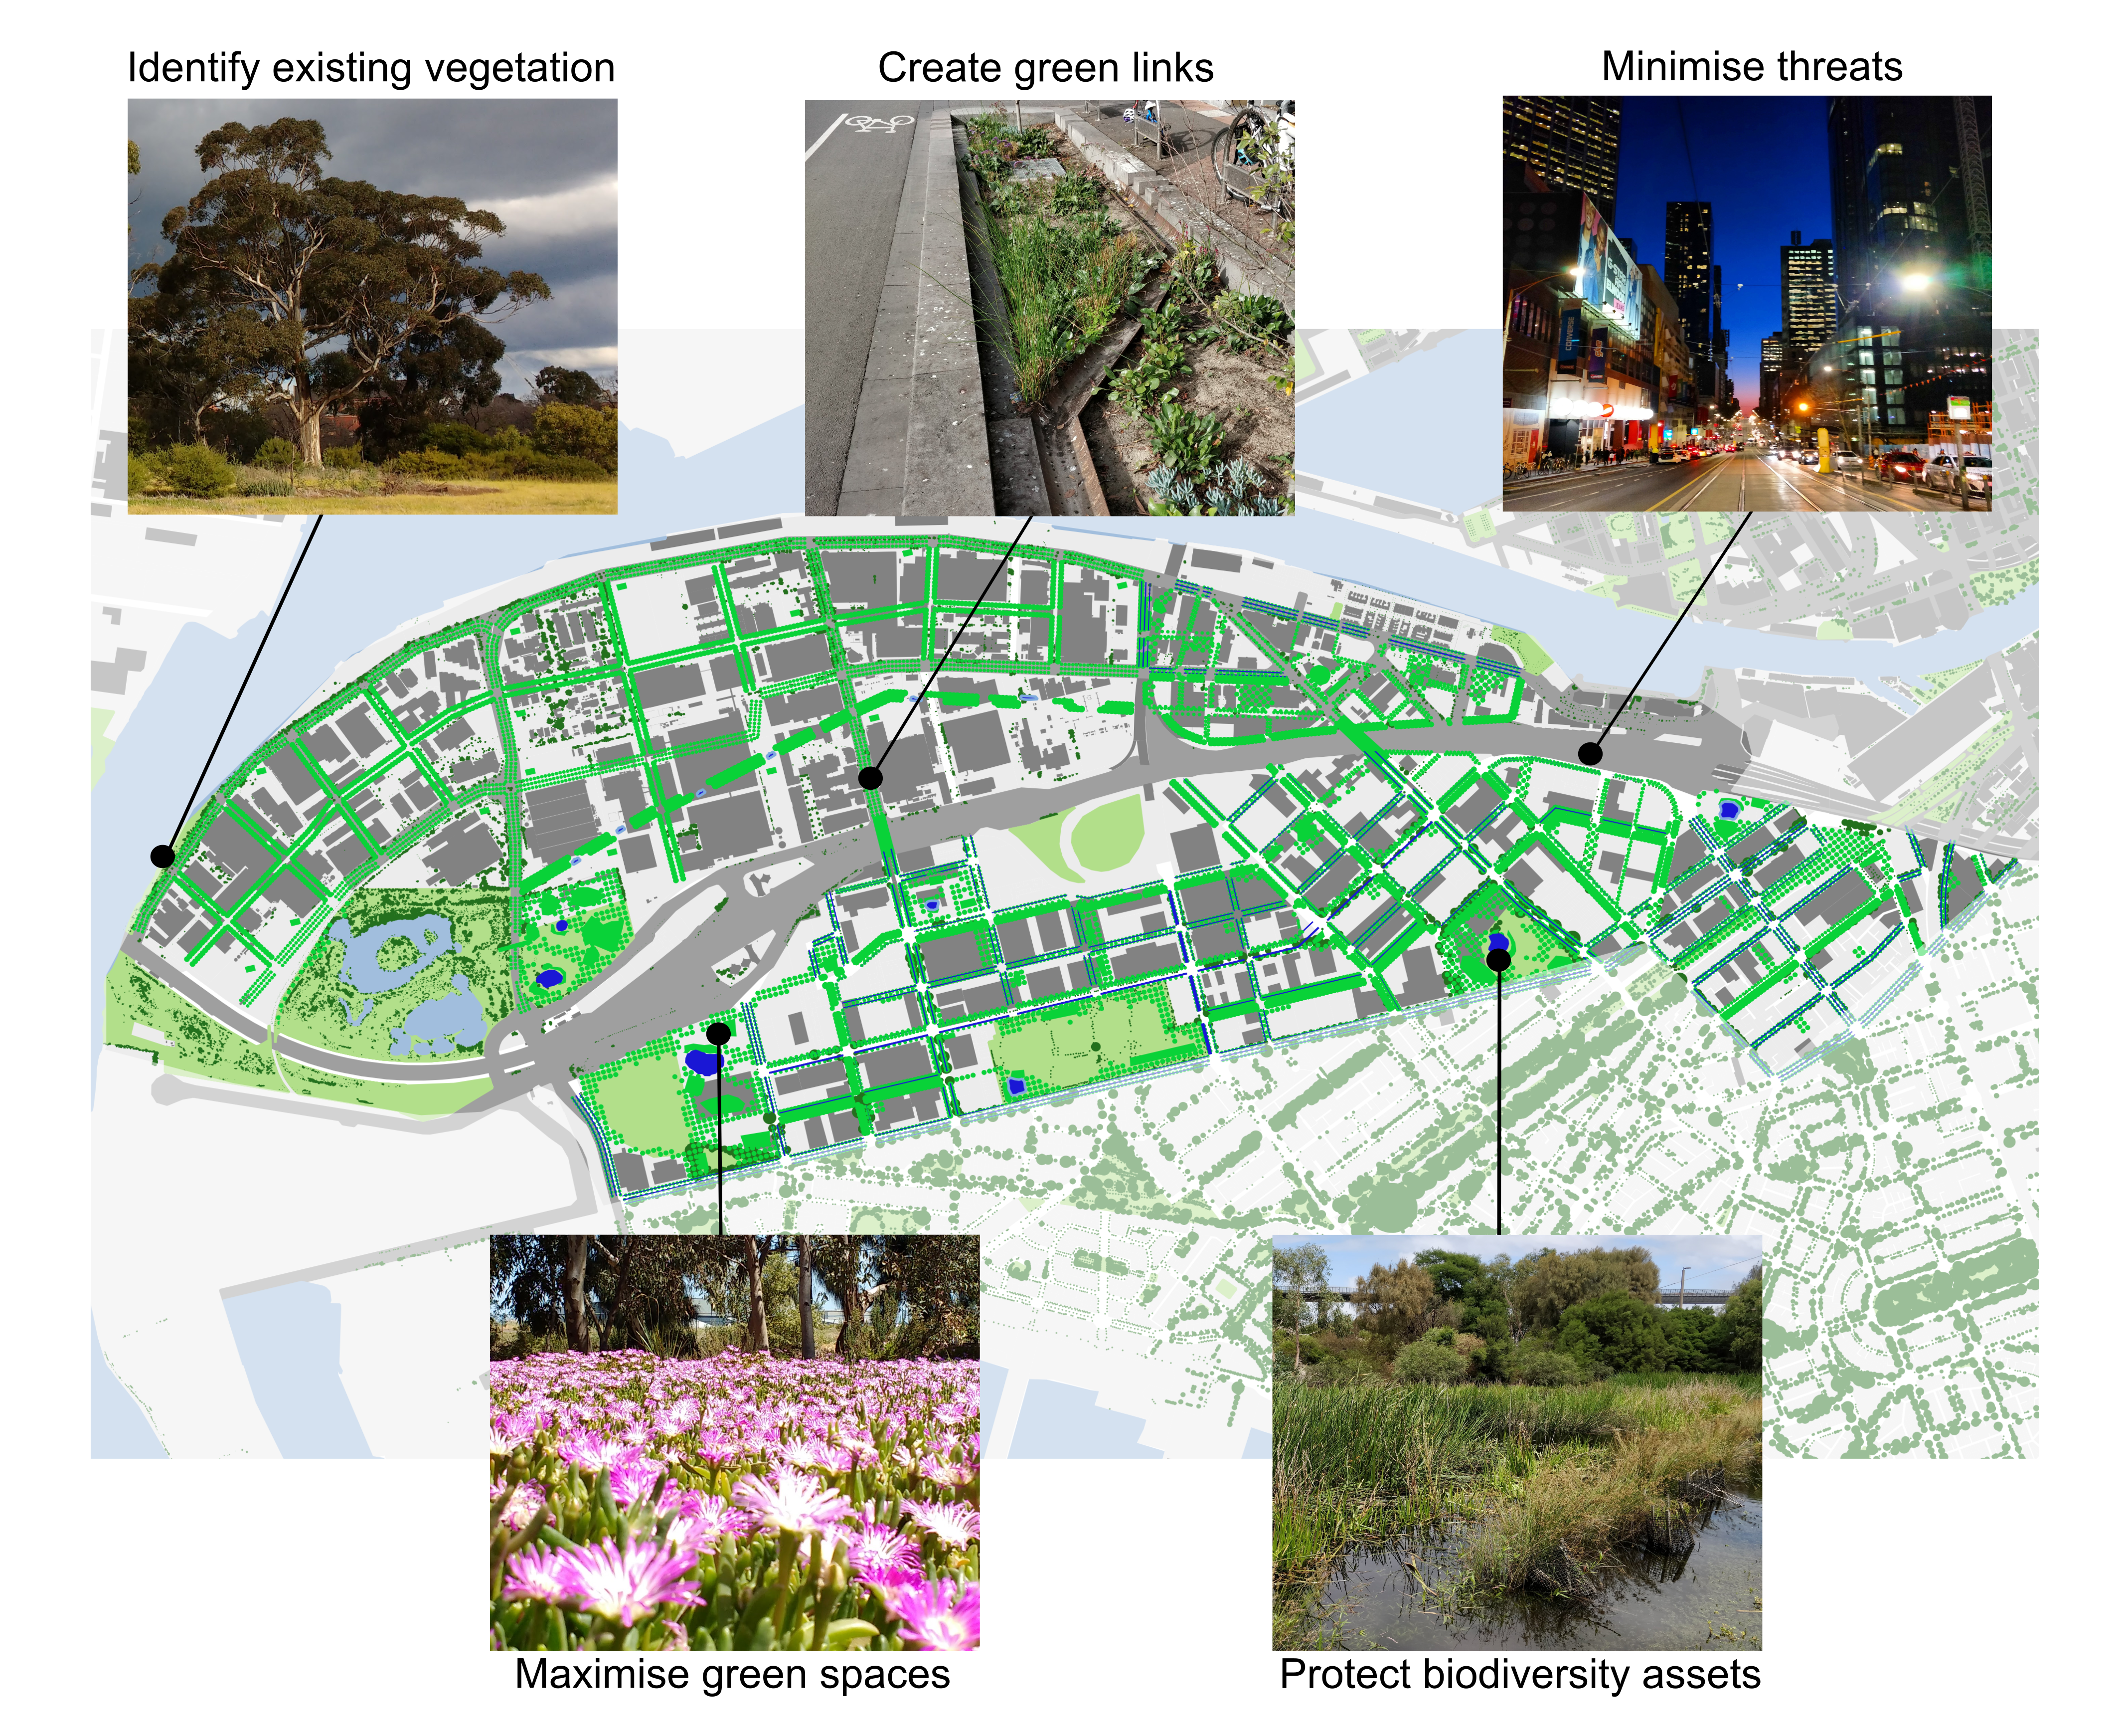 Examples of how BSUD recommendations could be included in the Fishermans Bend urban renewals.